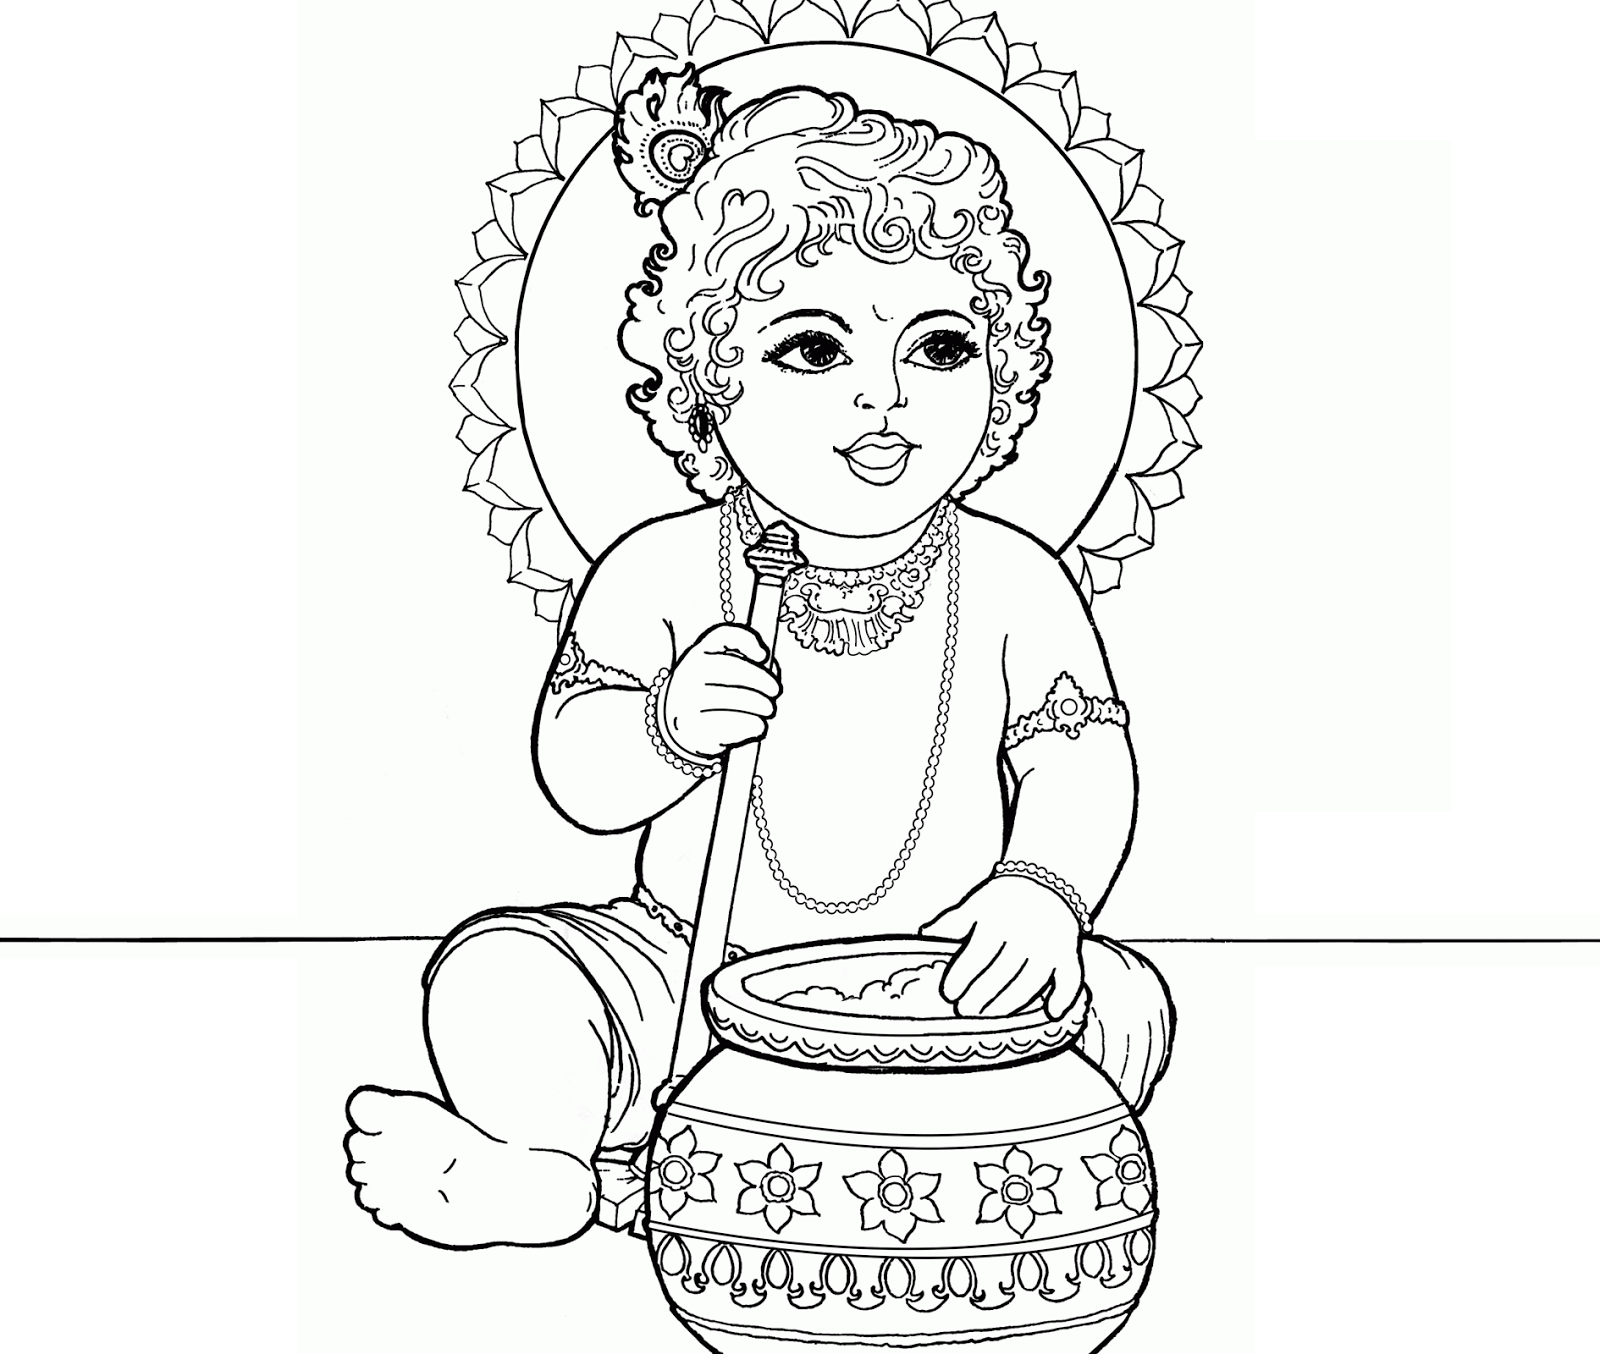 coloring pages on god krishna - photo#11